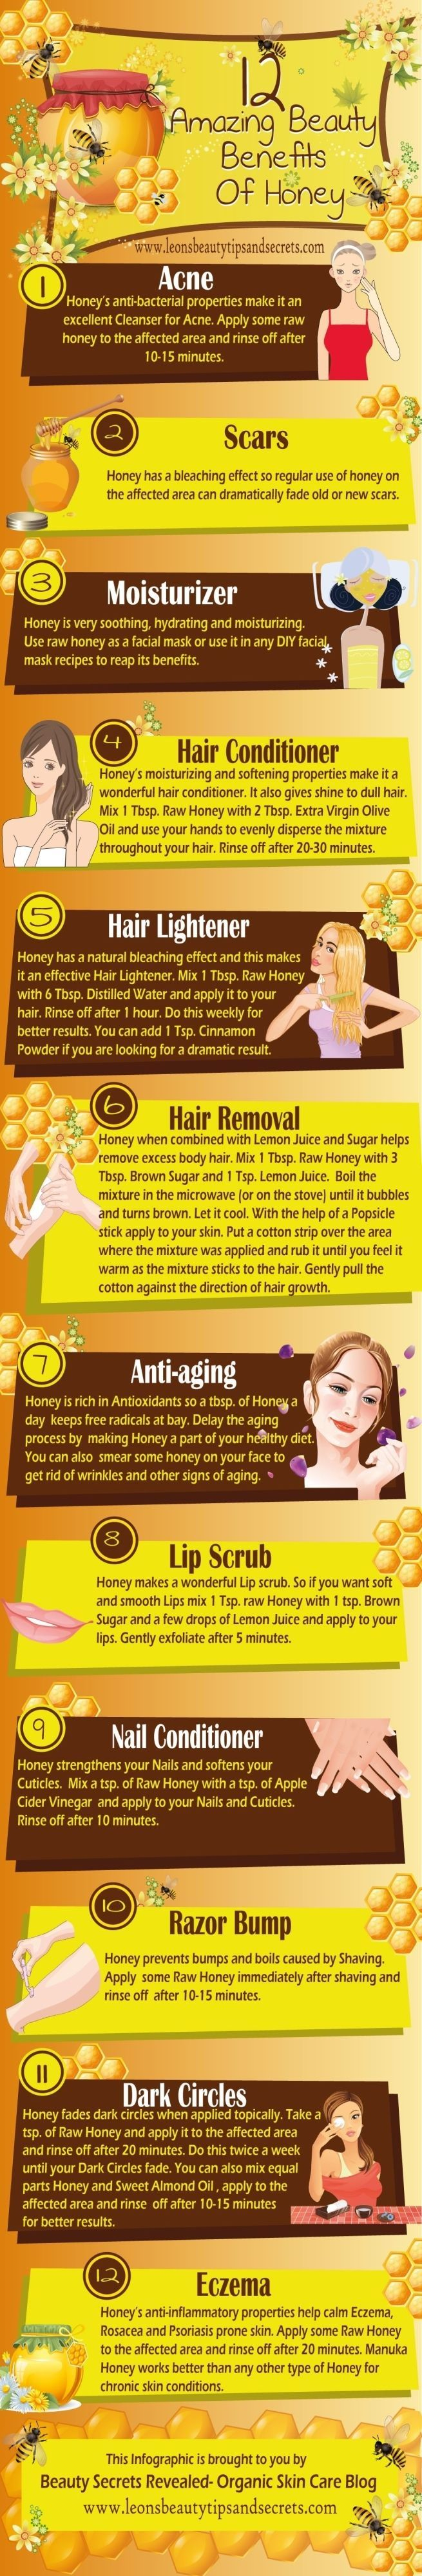 12 Beauty Benefits of Honey diy honey easy diy remedies home remedies acne remedies beauty remedy skin treatment hair treatments